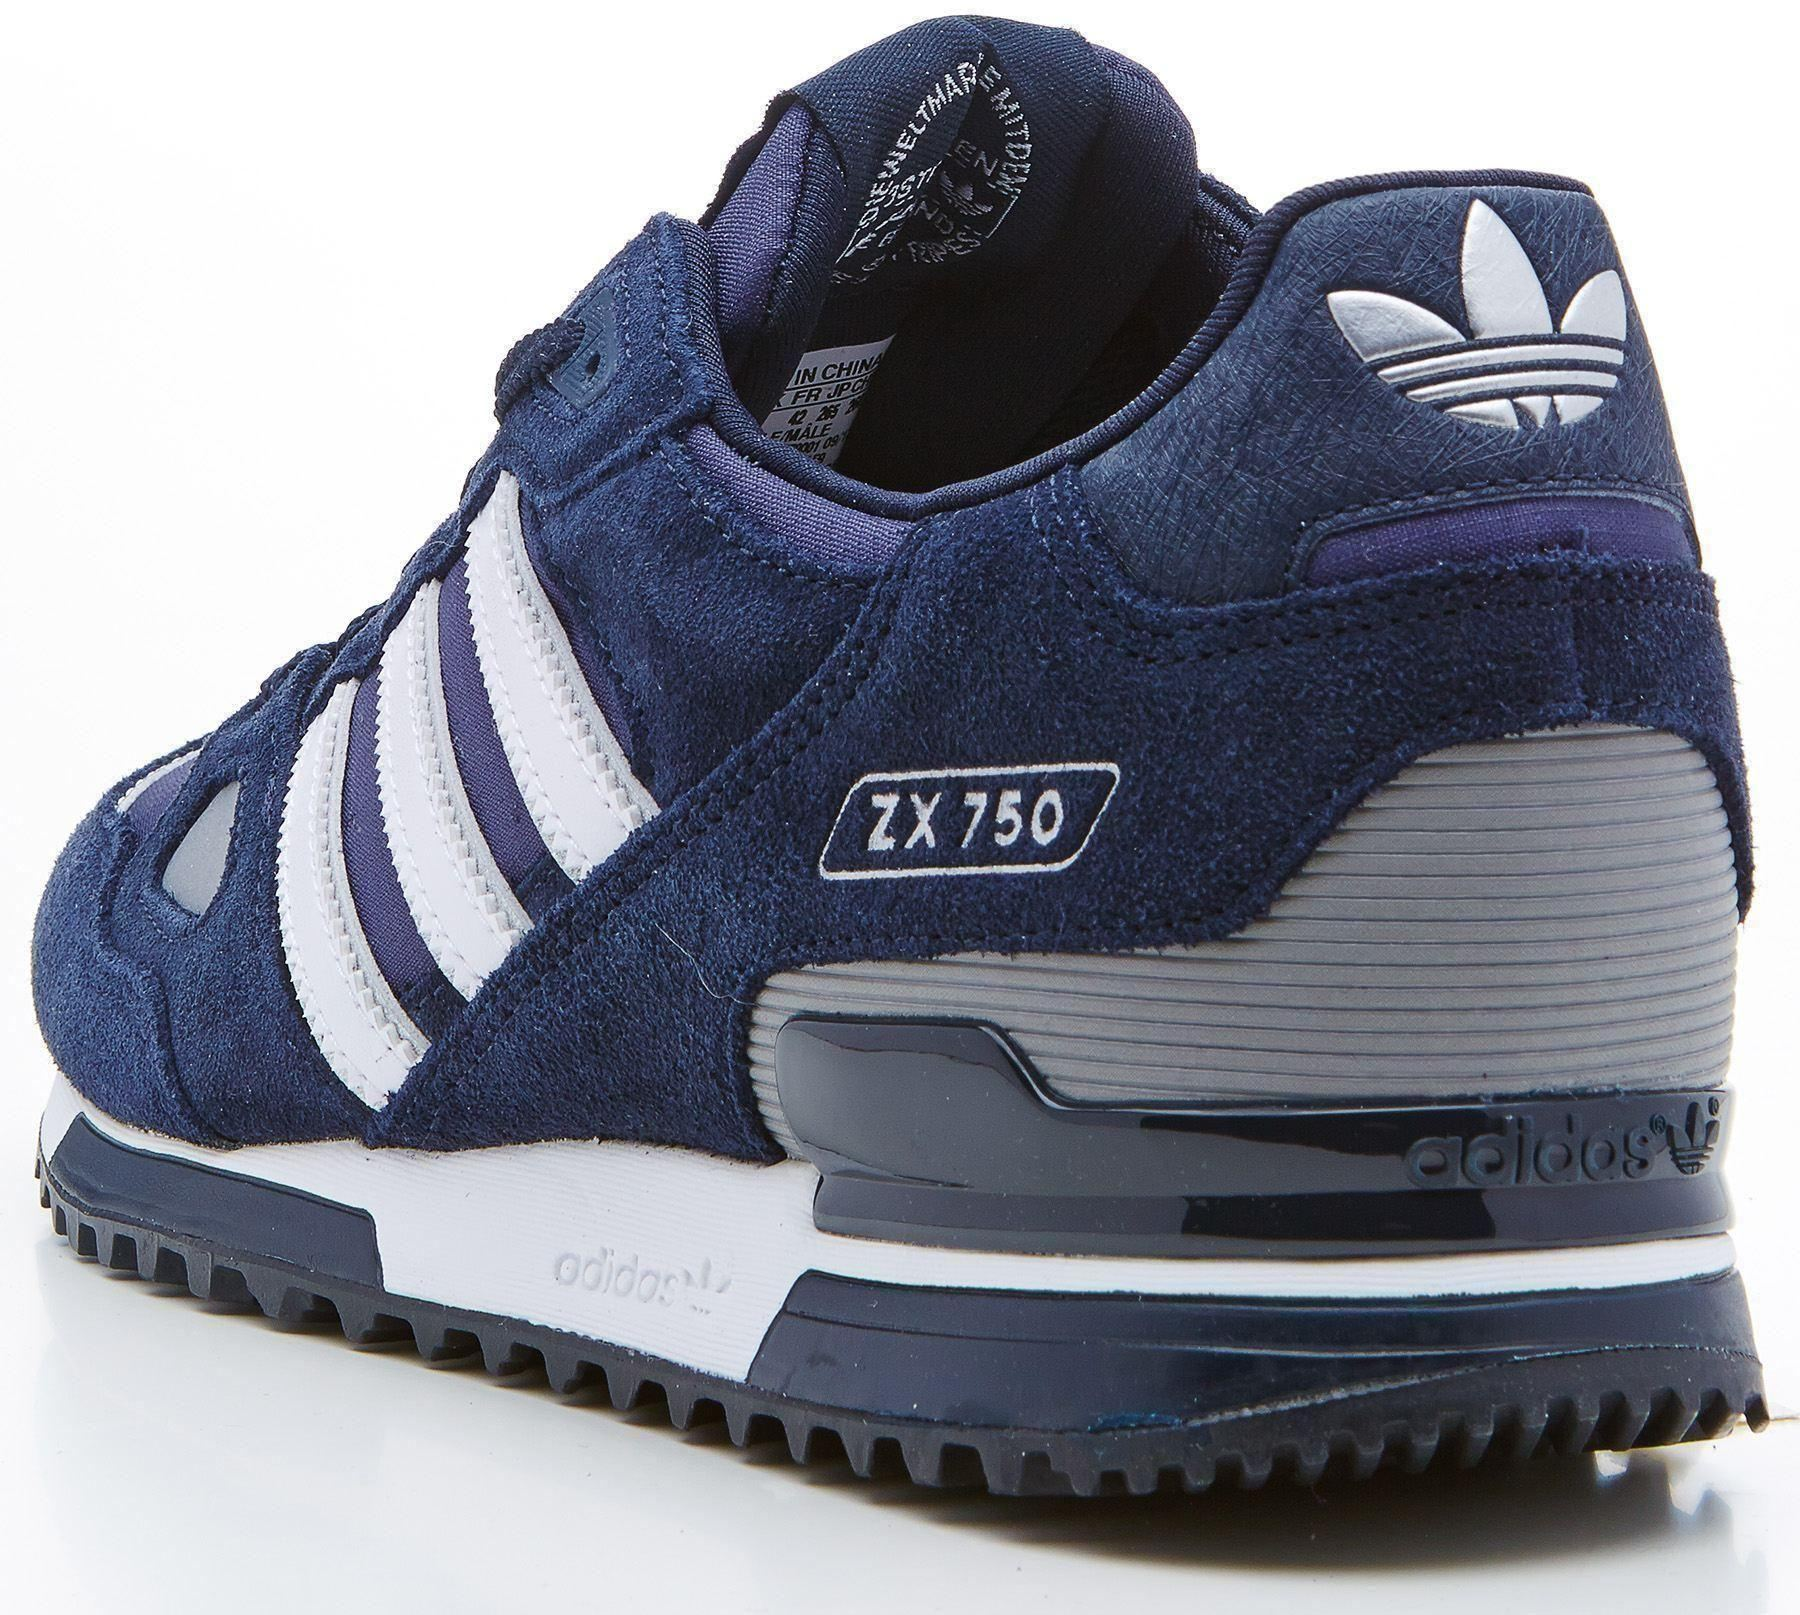 5abe796666cc27 ... czech scarpe adidas zx amazon adidas originals men s zx 750 trainers  suede 9365c 8029a